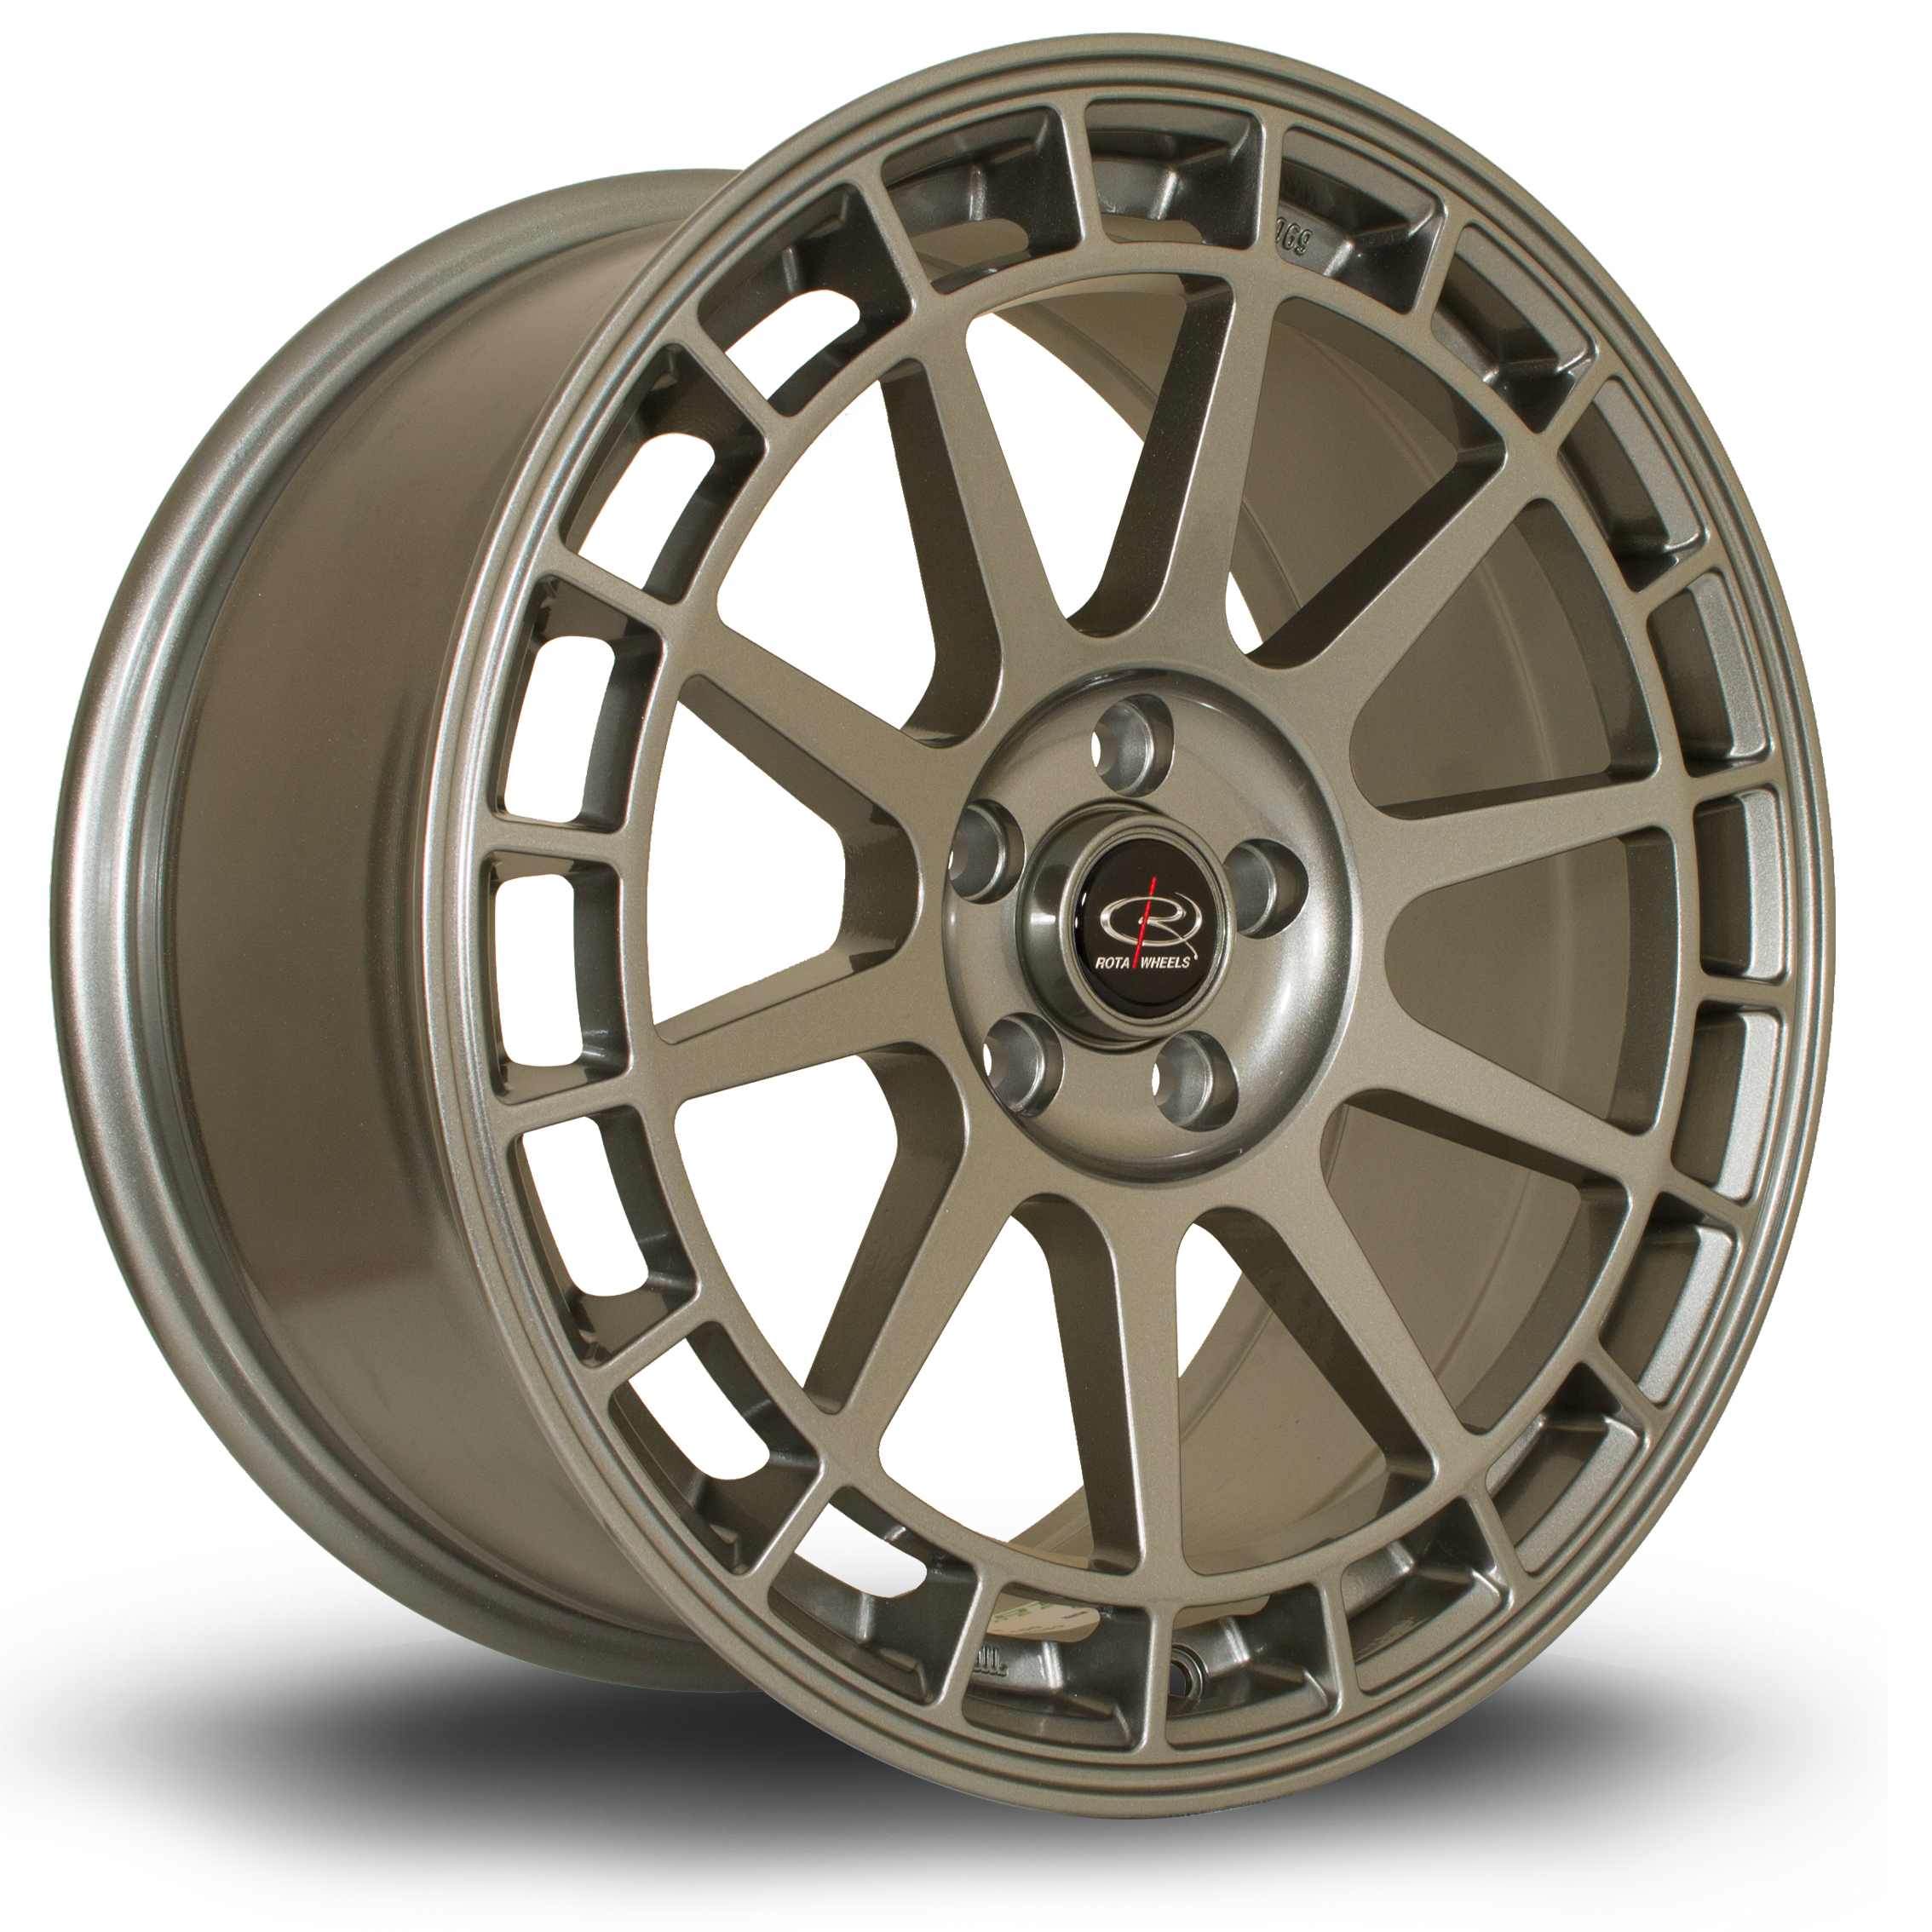 www.rarerims.co.uk